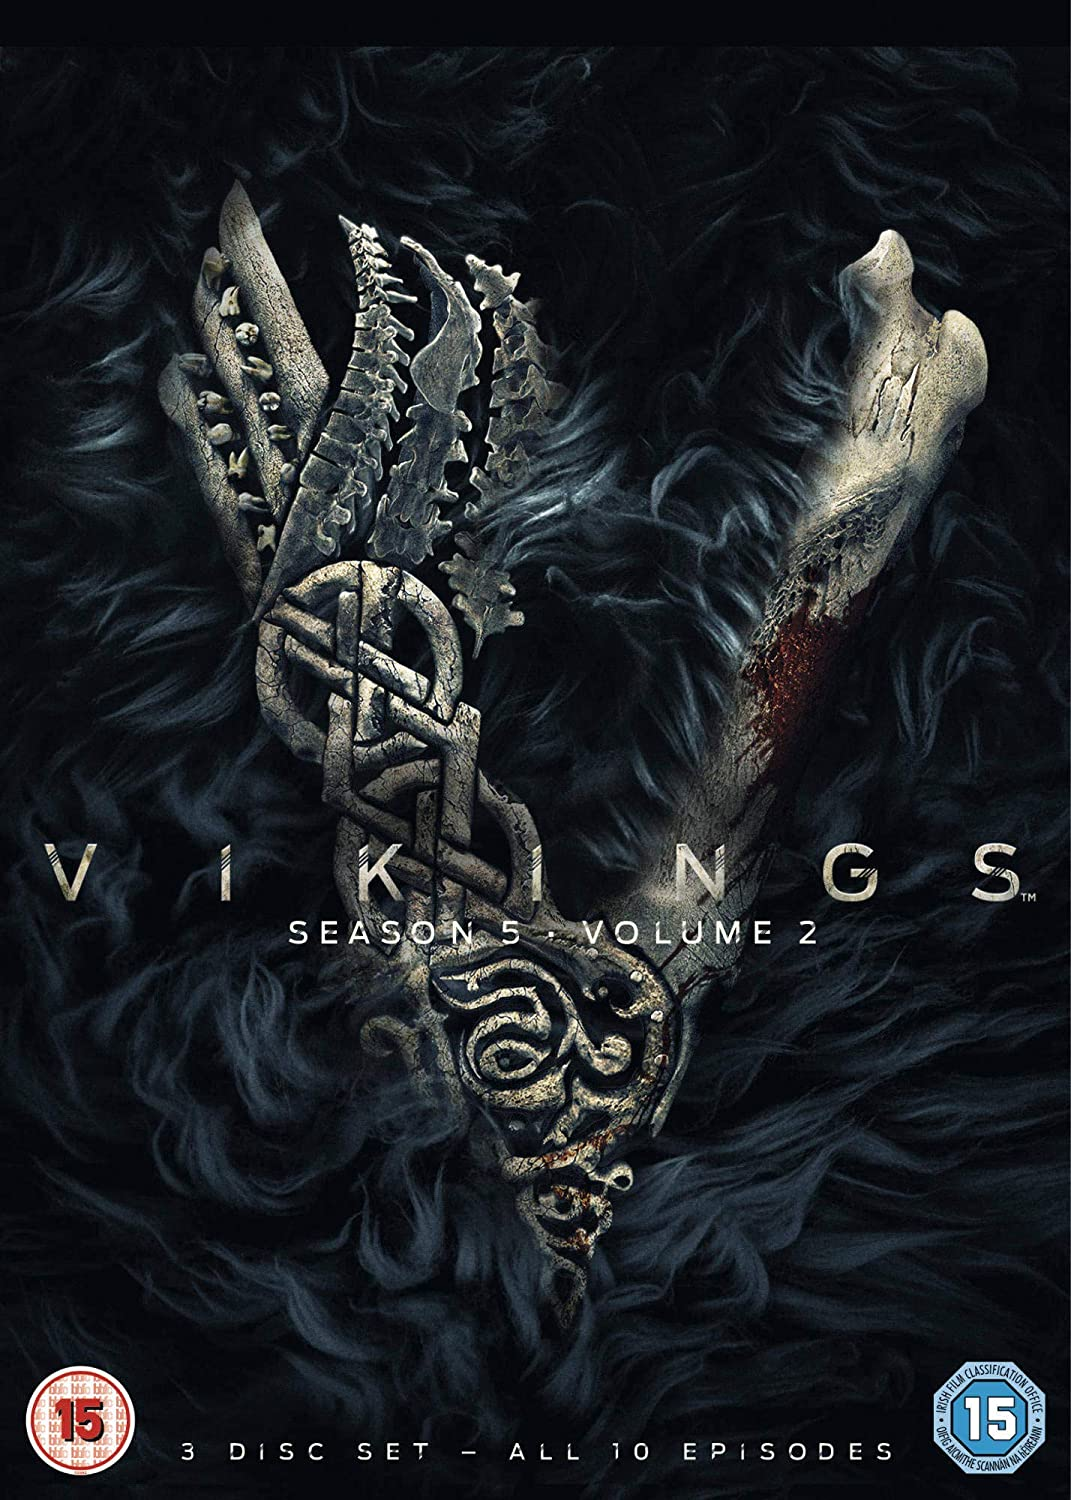 vikings season 5 episode 2 download free